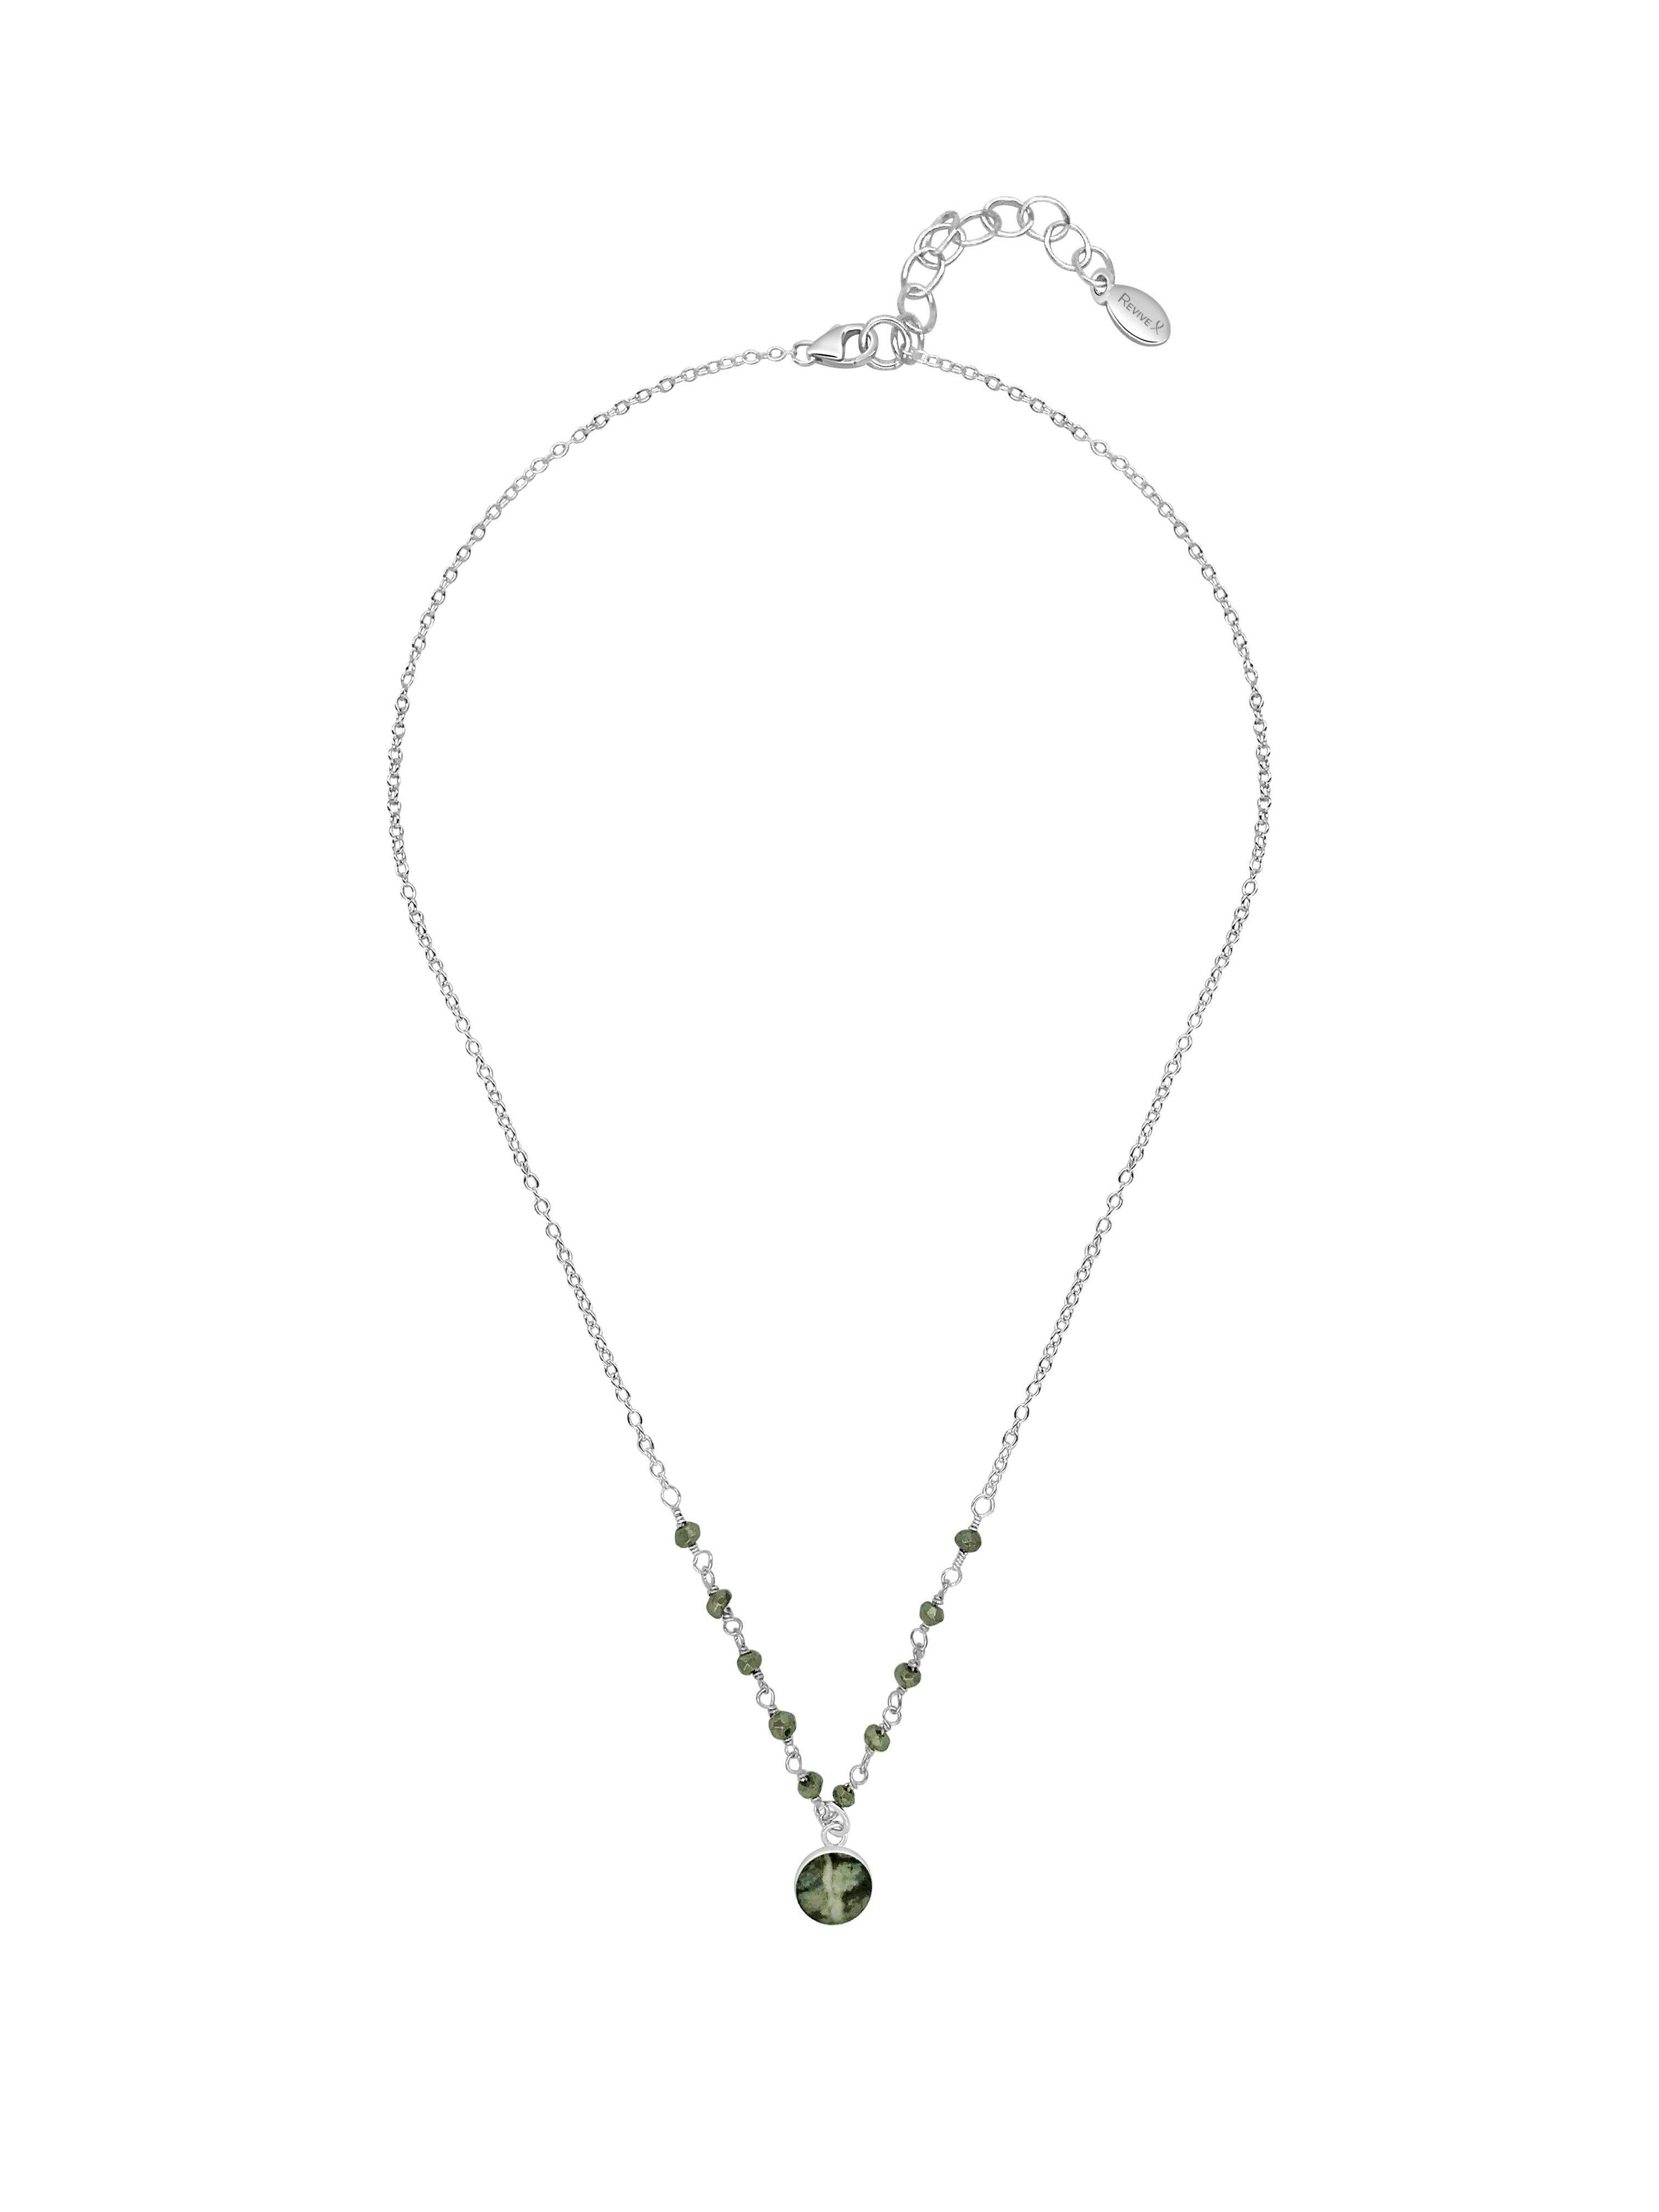 16 inch to 18 inch adjustable sterling silver chain necklace with small silver pyrite stones across the front and a small round pendant hanging from the center of a lung cancer cell image in resin